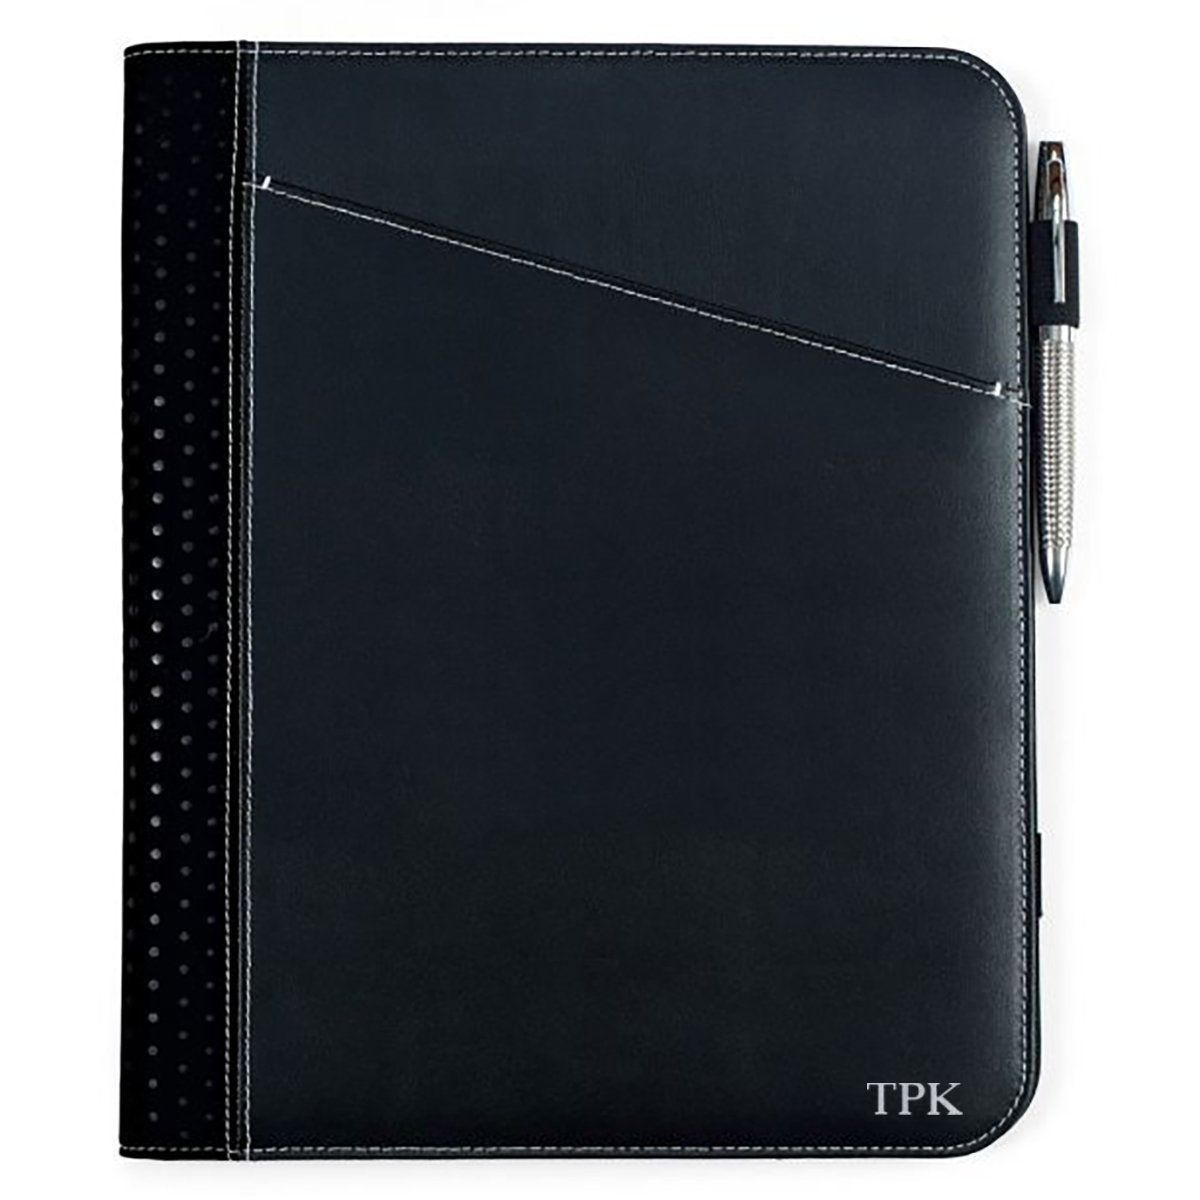 Personalized-Borello-Cedar-Black-Leather-Writing-Pad